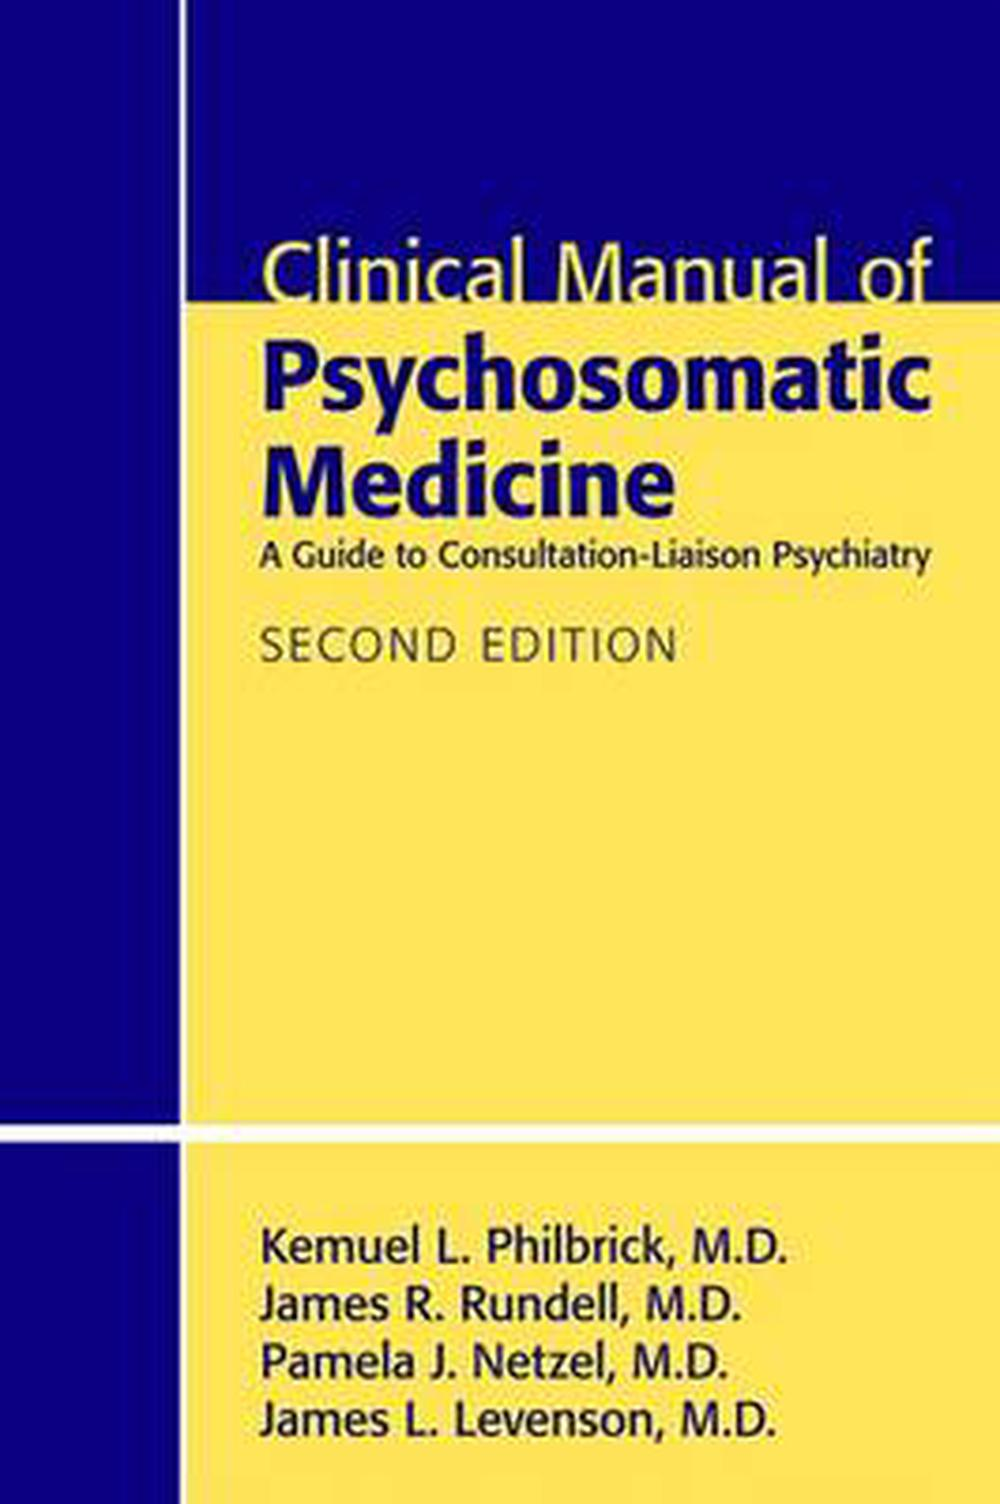 Personalized Medicine Manual Guide